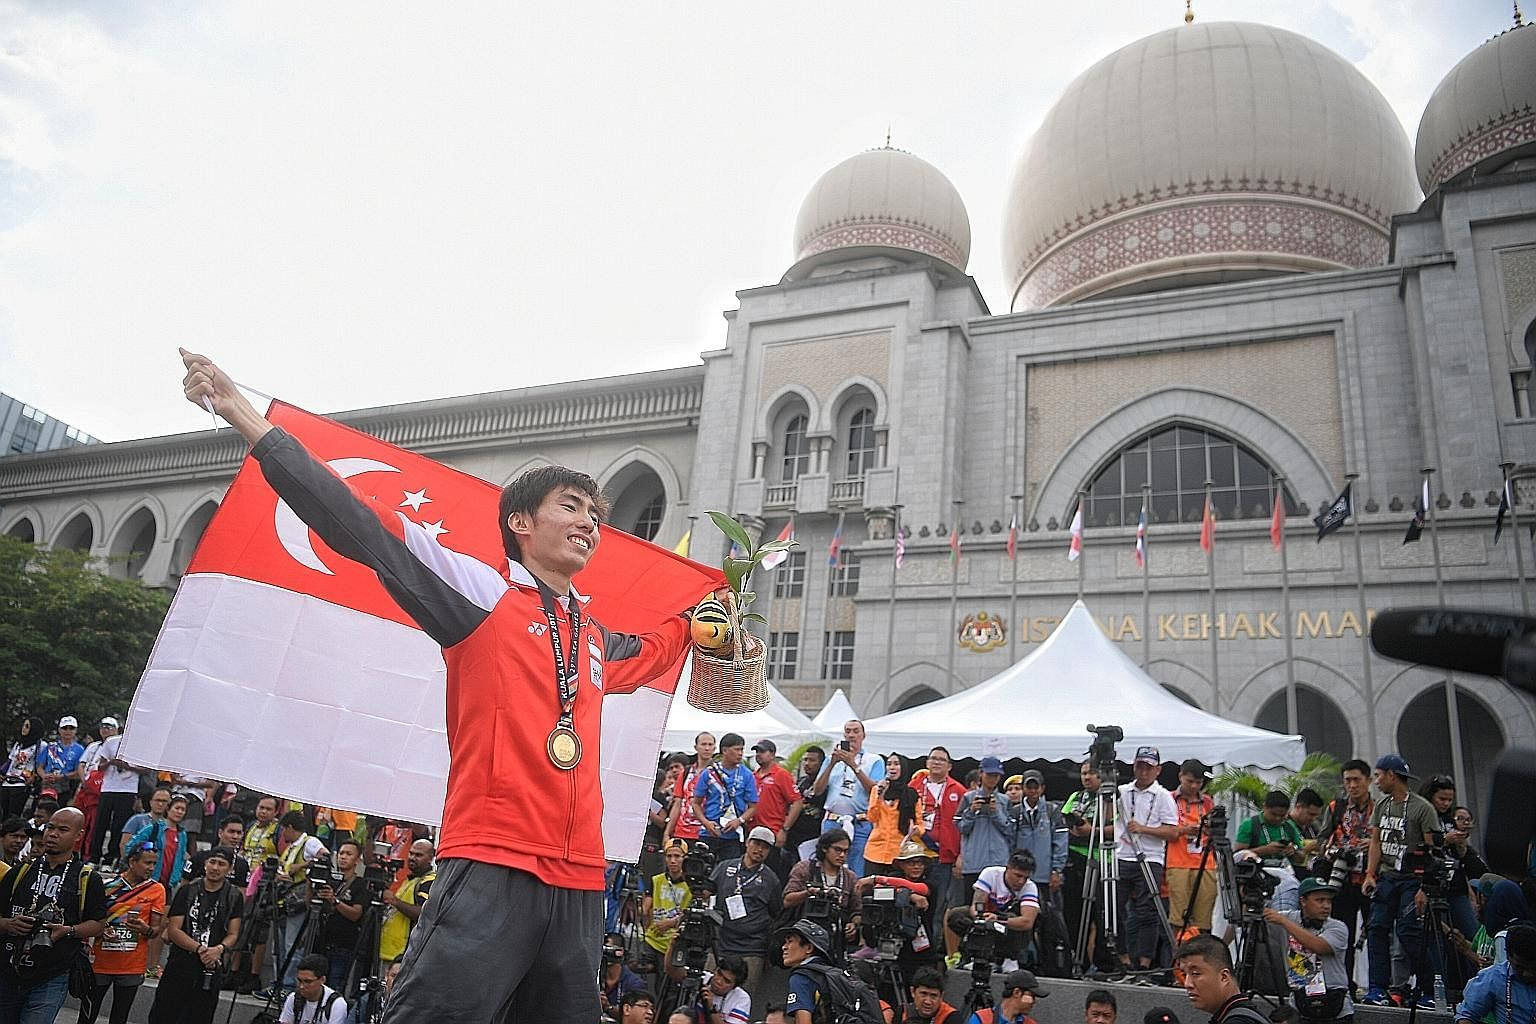 Singapore marathoner Soh Rui Yong celebrating his victory on the podium in front of the Istana Kehakiman, in Putrajaya, yesterday. The Republic's women's water polo team also picked up a silver medal.